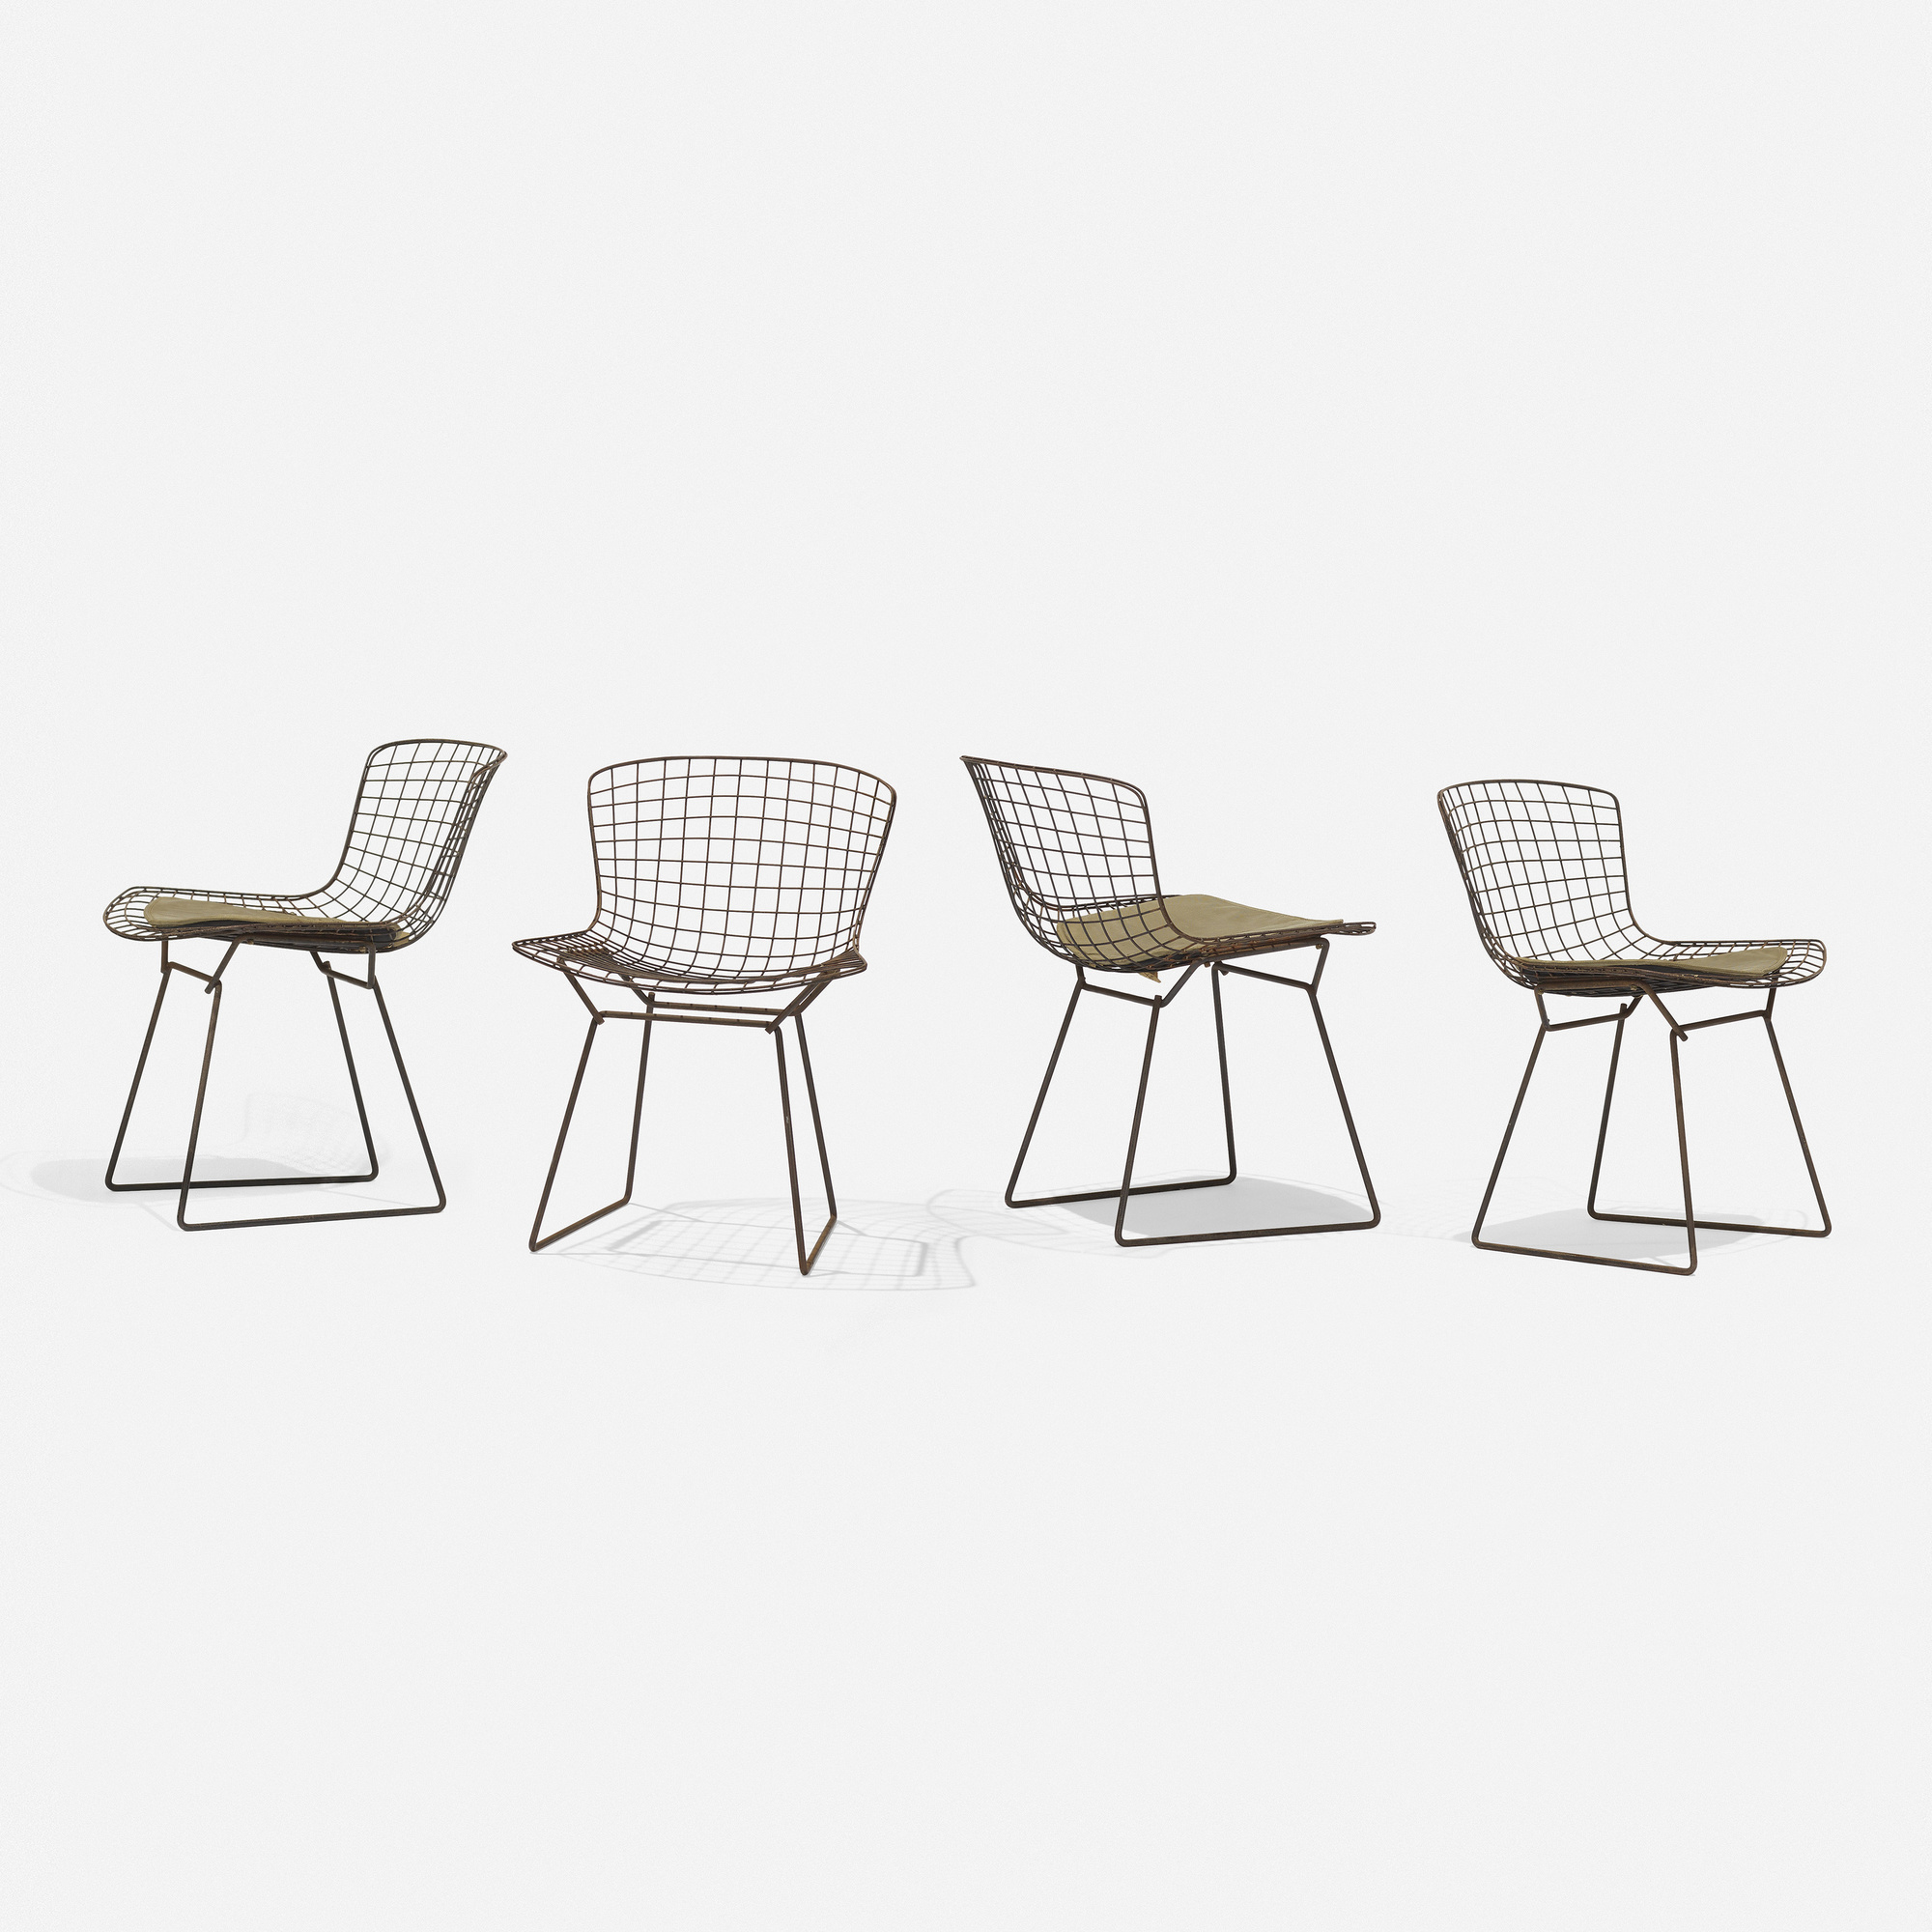 333: Harry Bertoia / Early Wire Chairs, Set Of Four (1 Of 4